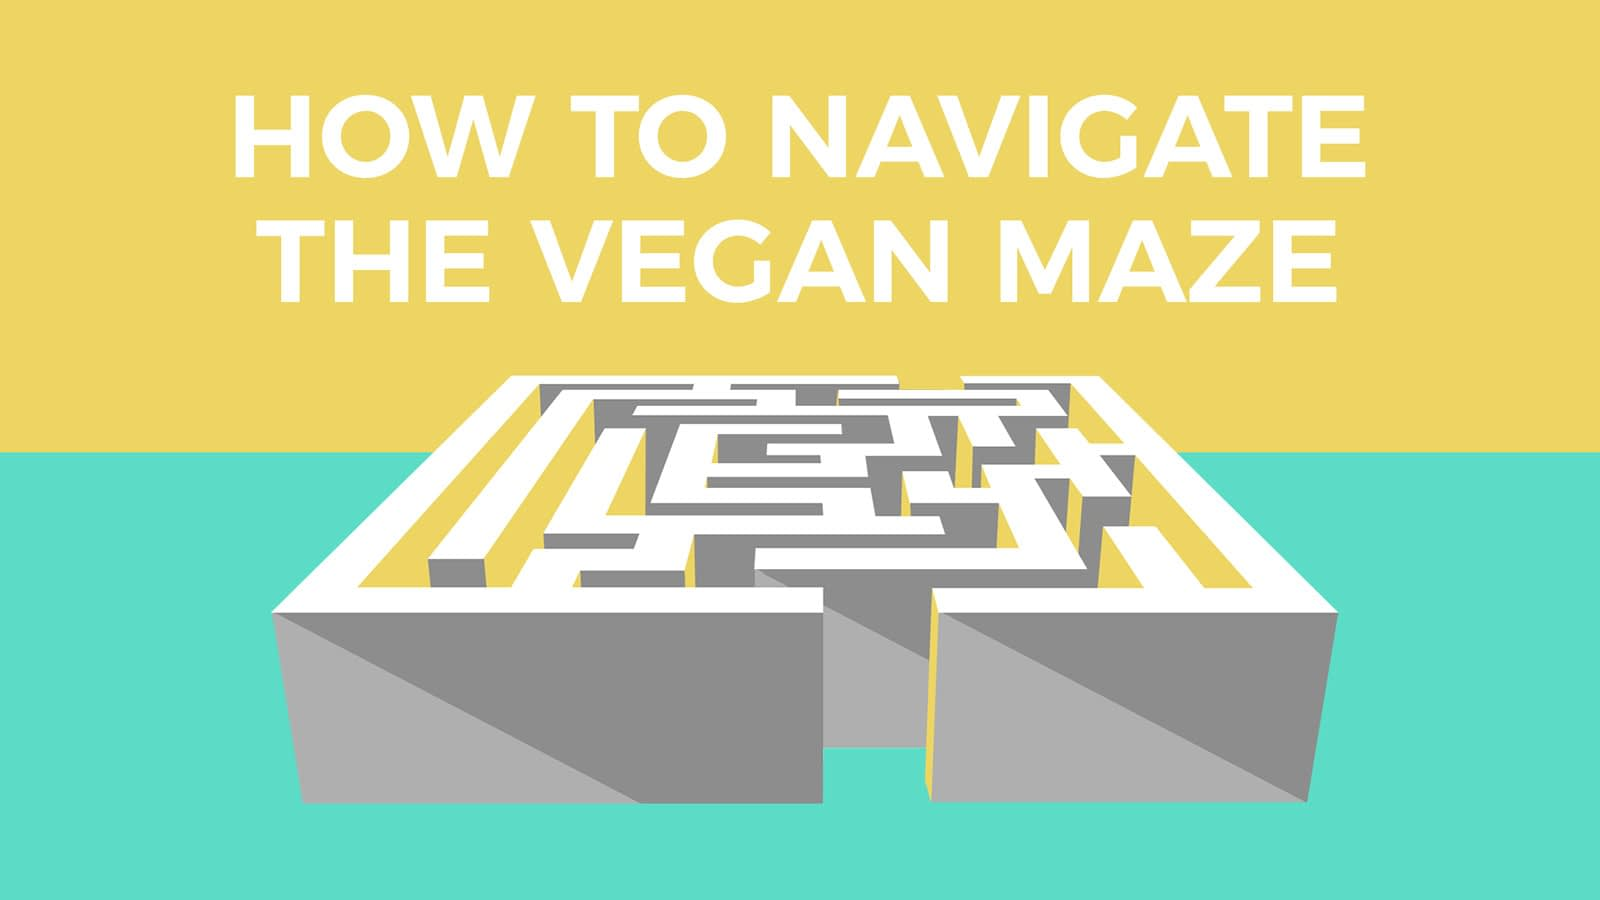 Going Vegan And Staying Vegan How To Navigate The Vegan Maze